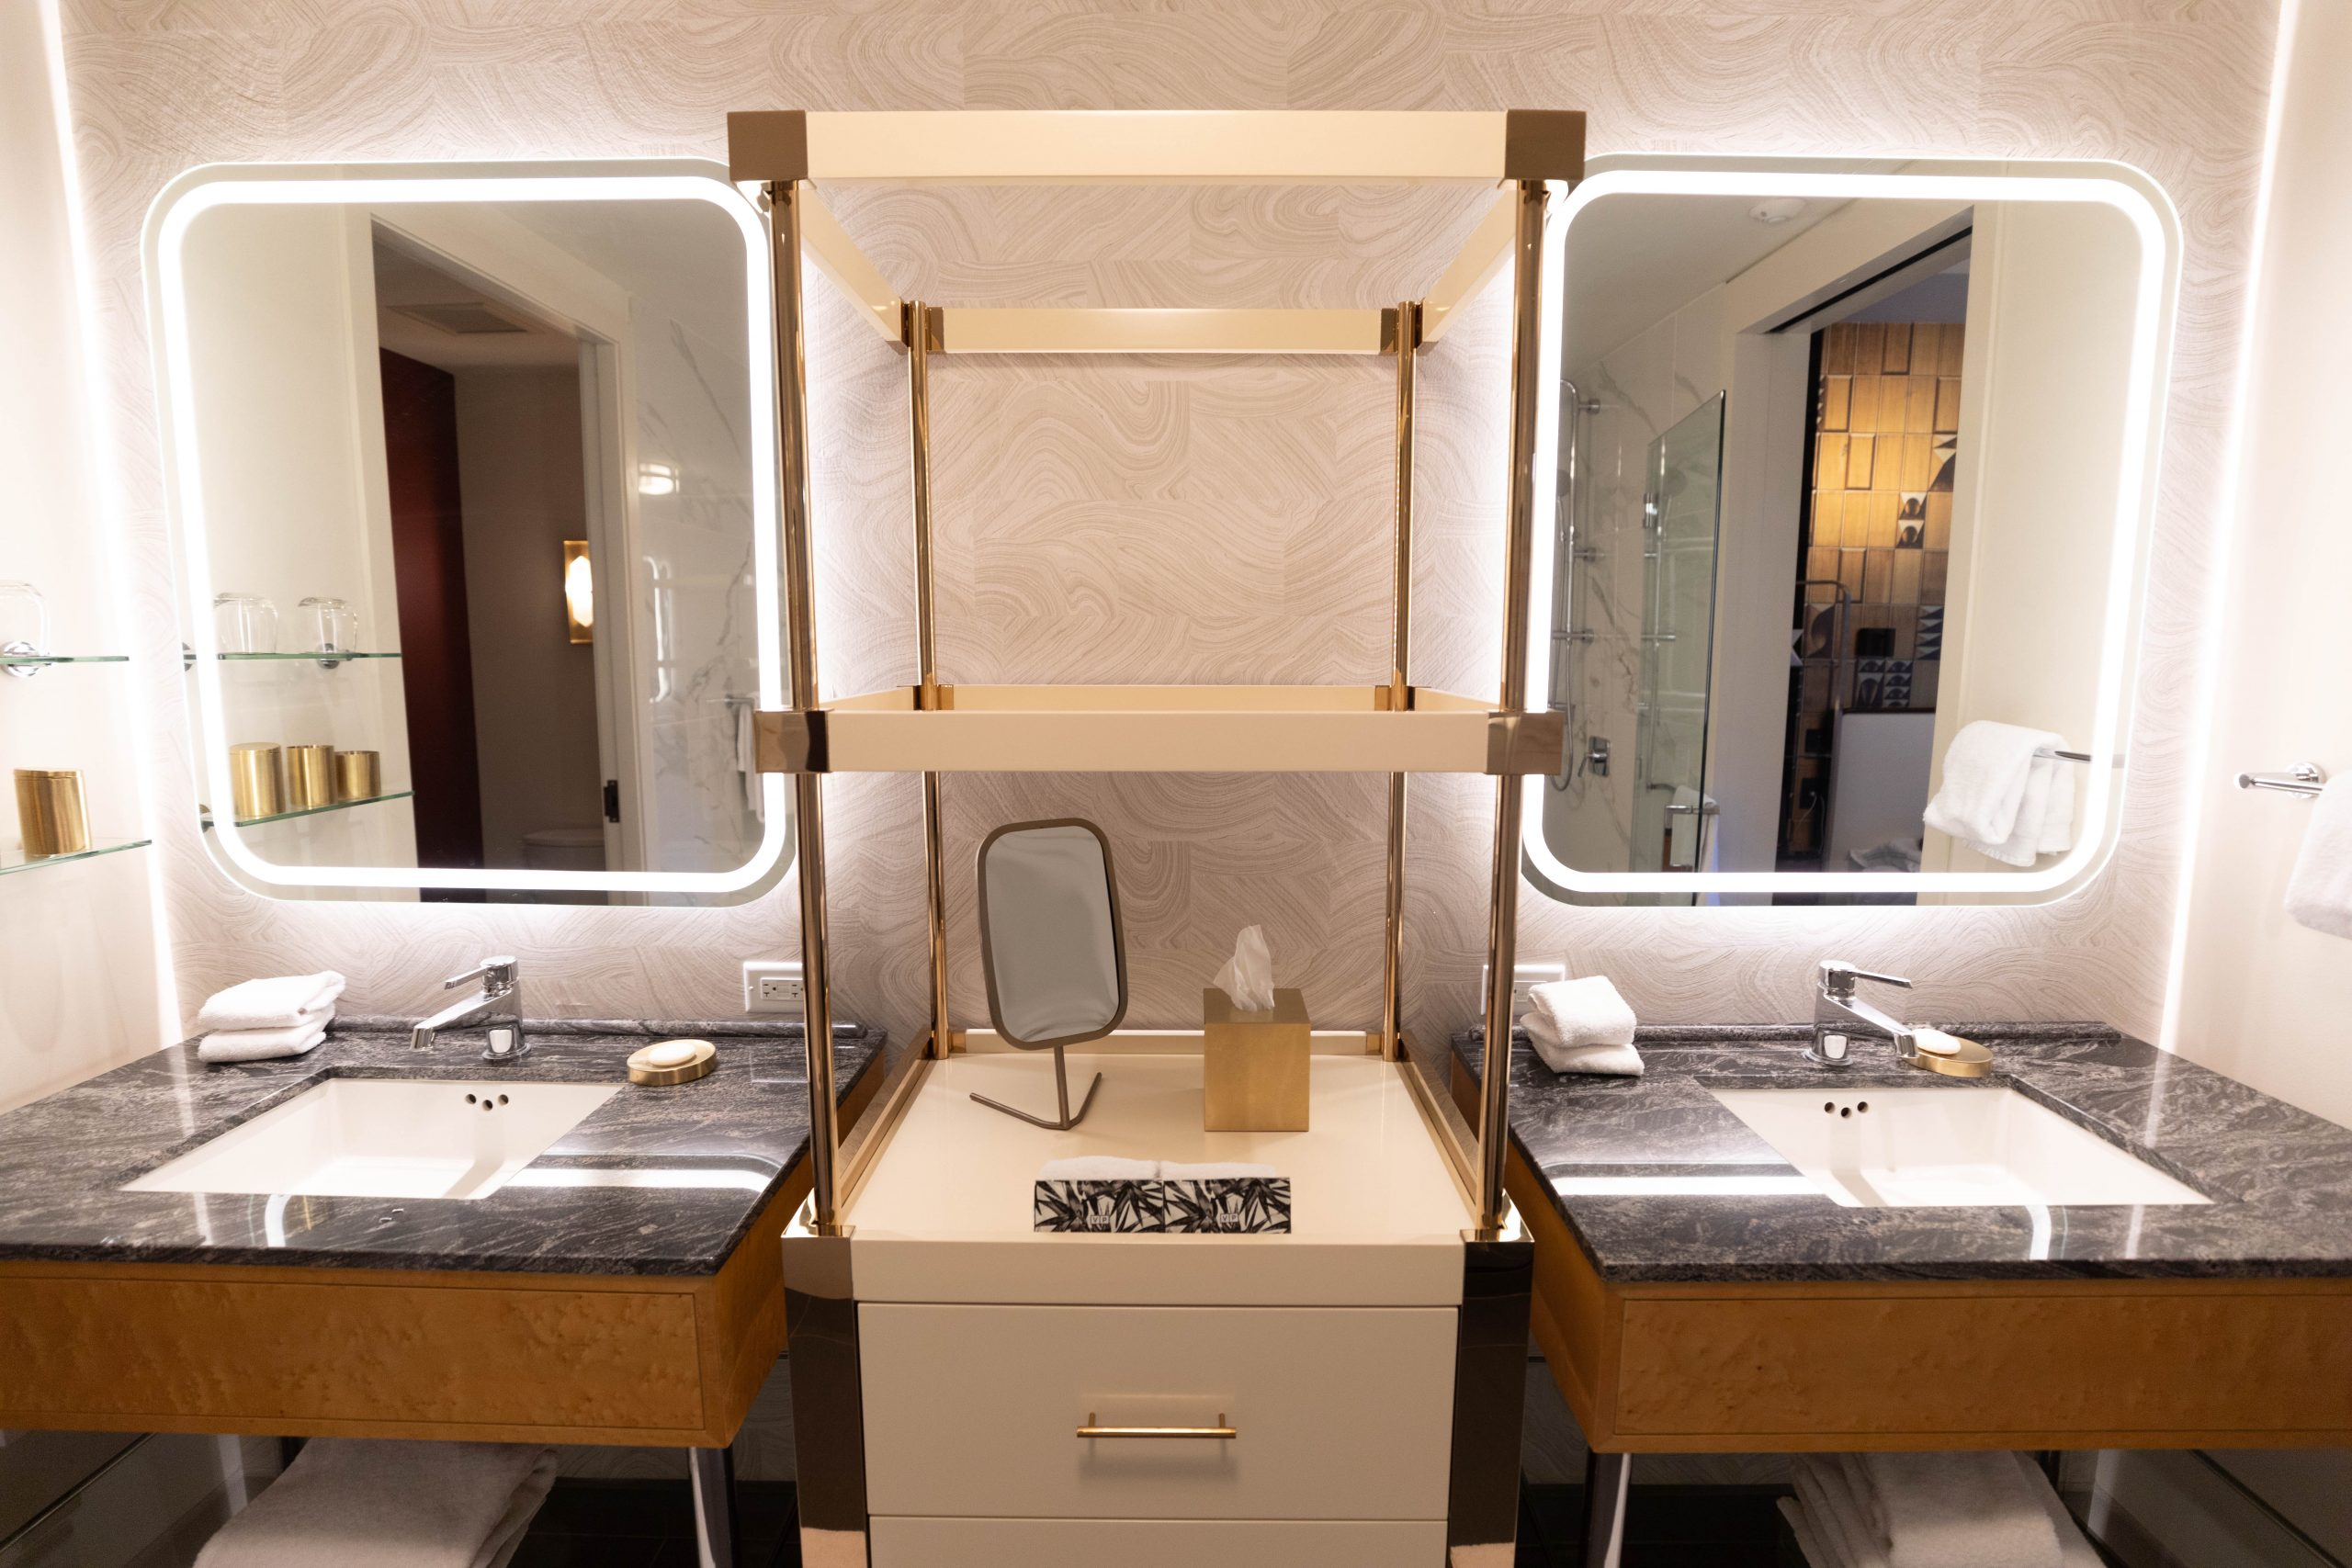 Marble Bathroom Inside Viceroy Chicago 5-Star Luxury Hotel in Historic Gold Coast District Illinois Midwest Luxury Hotels by Annie Fairfax Where to Stay in Chicago